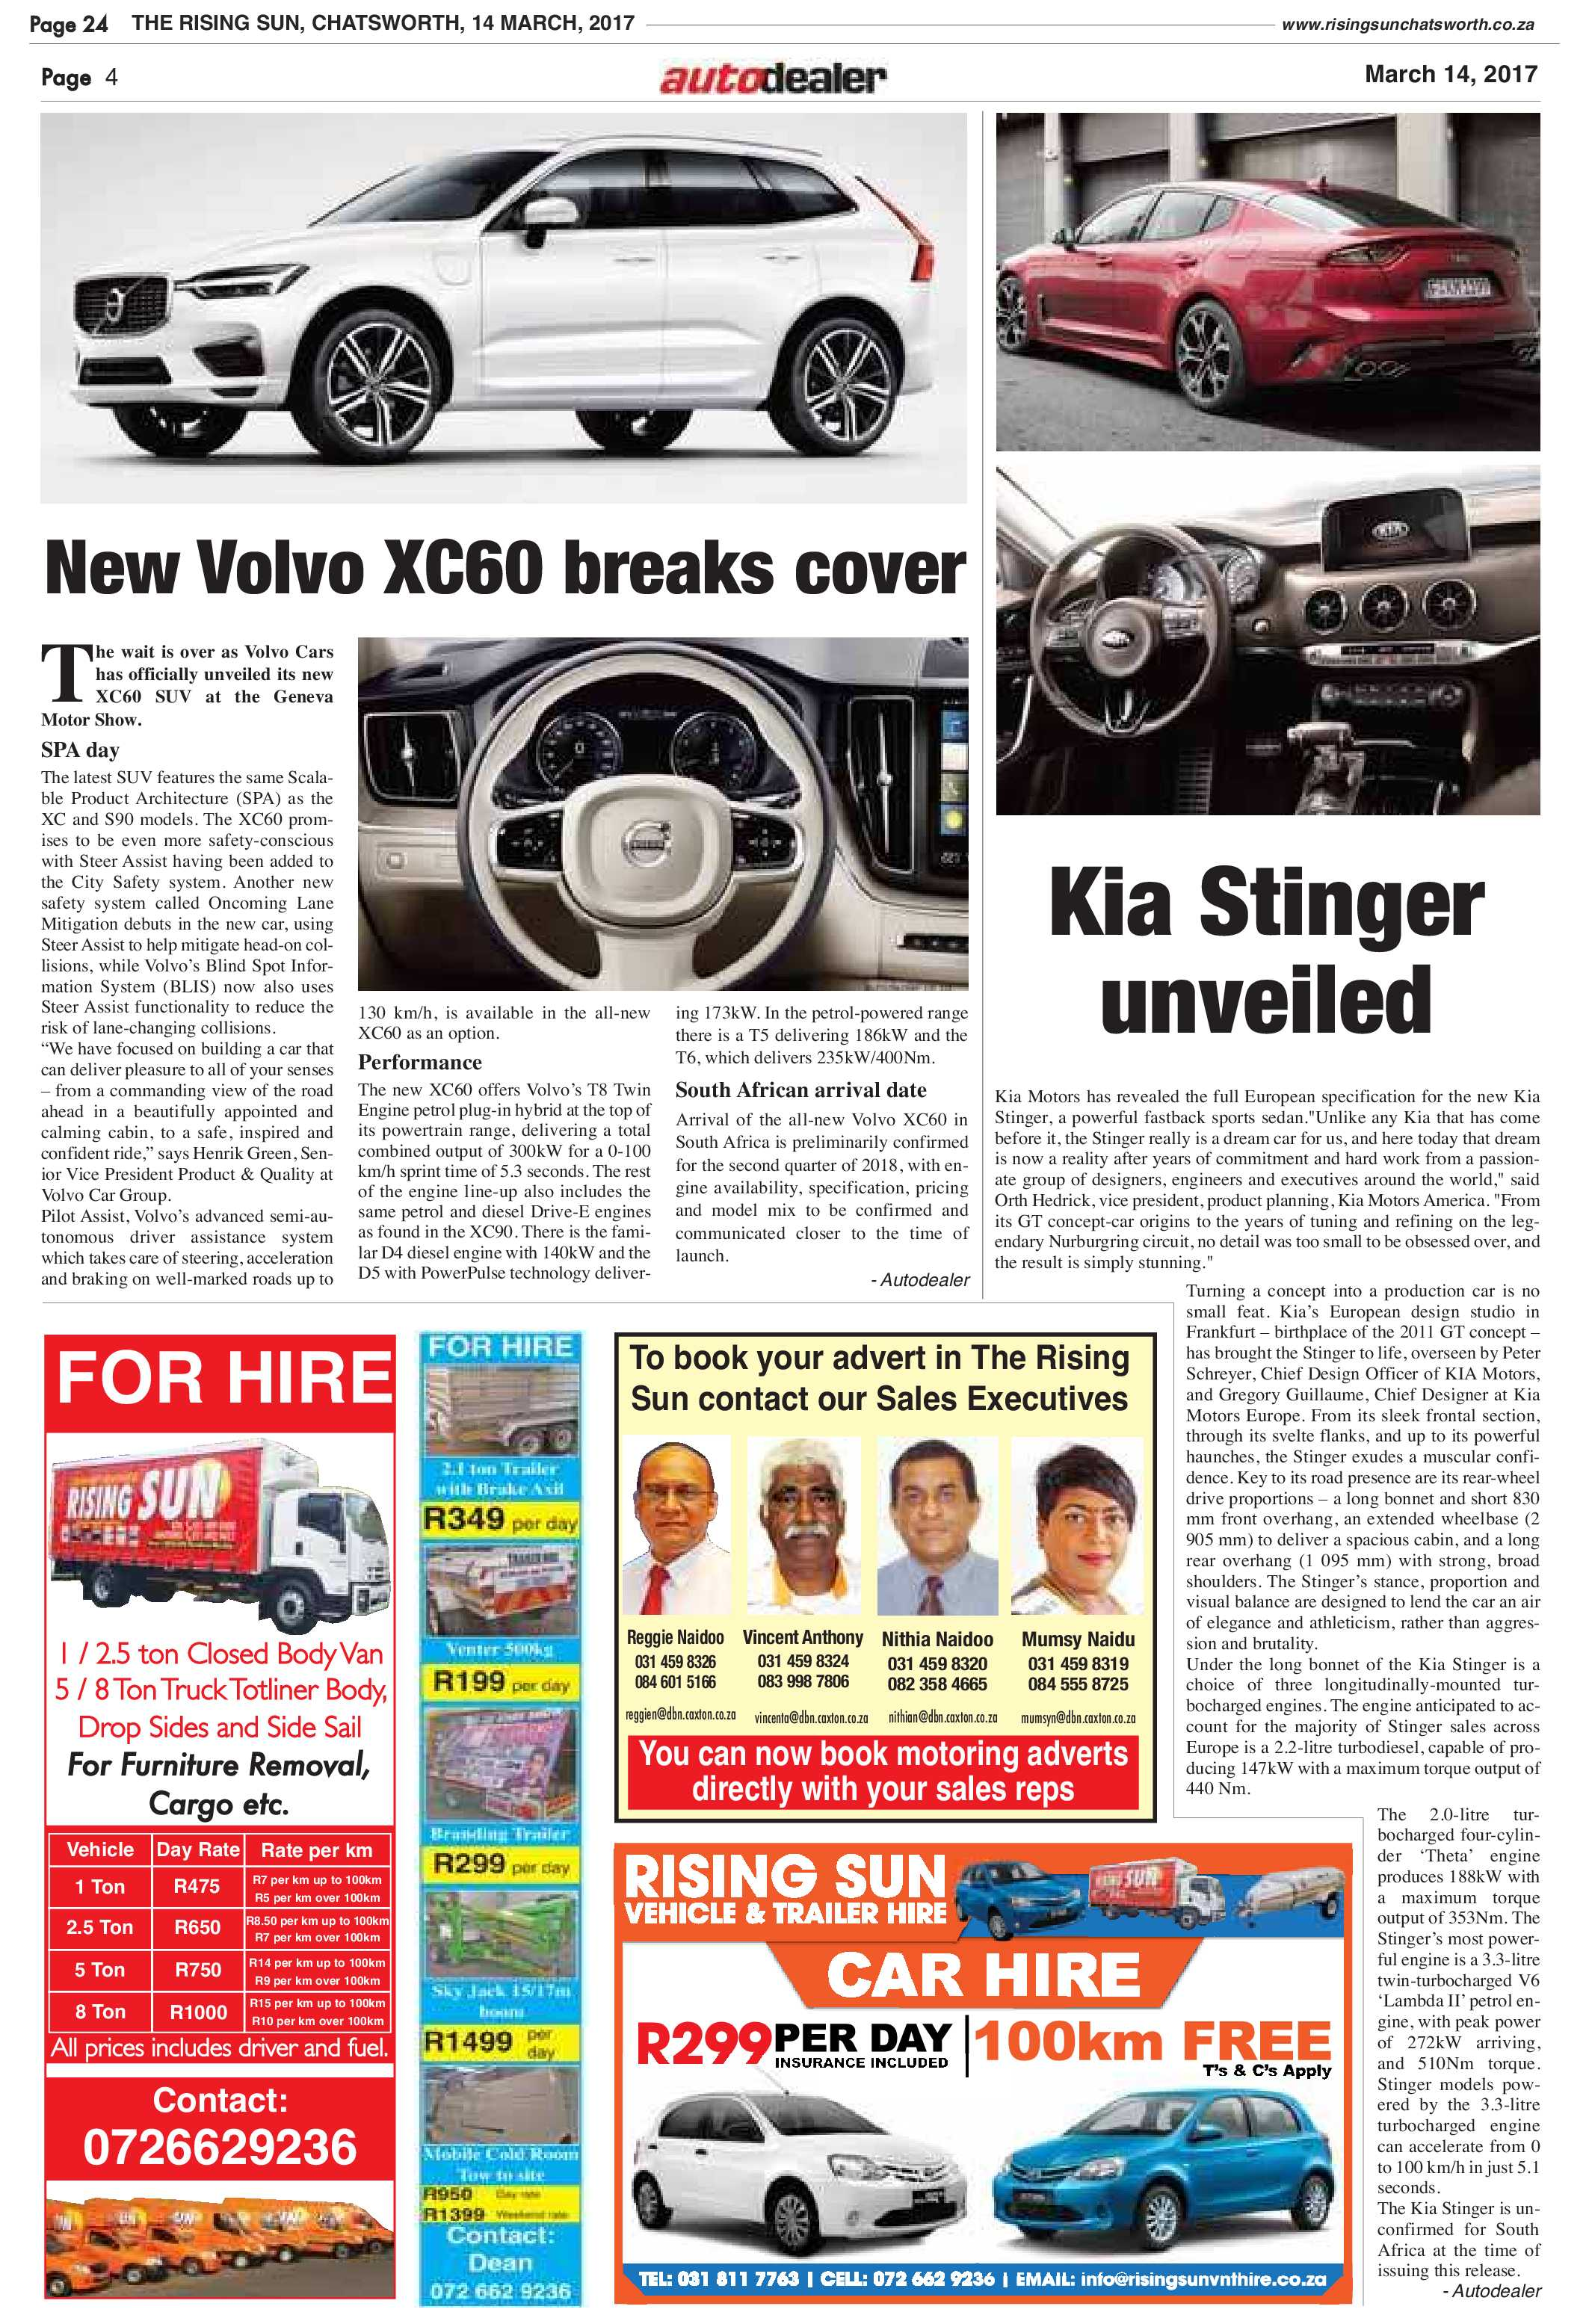 chatsworth-police-slammed-epapers-page-28